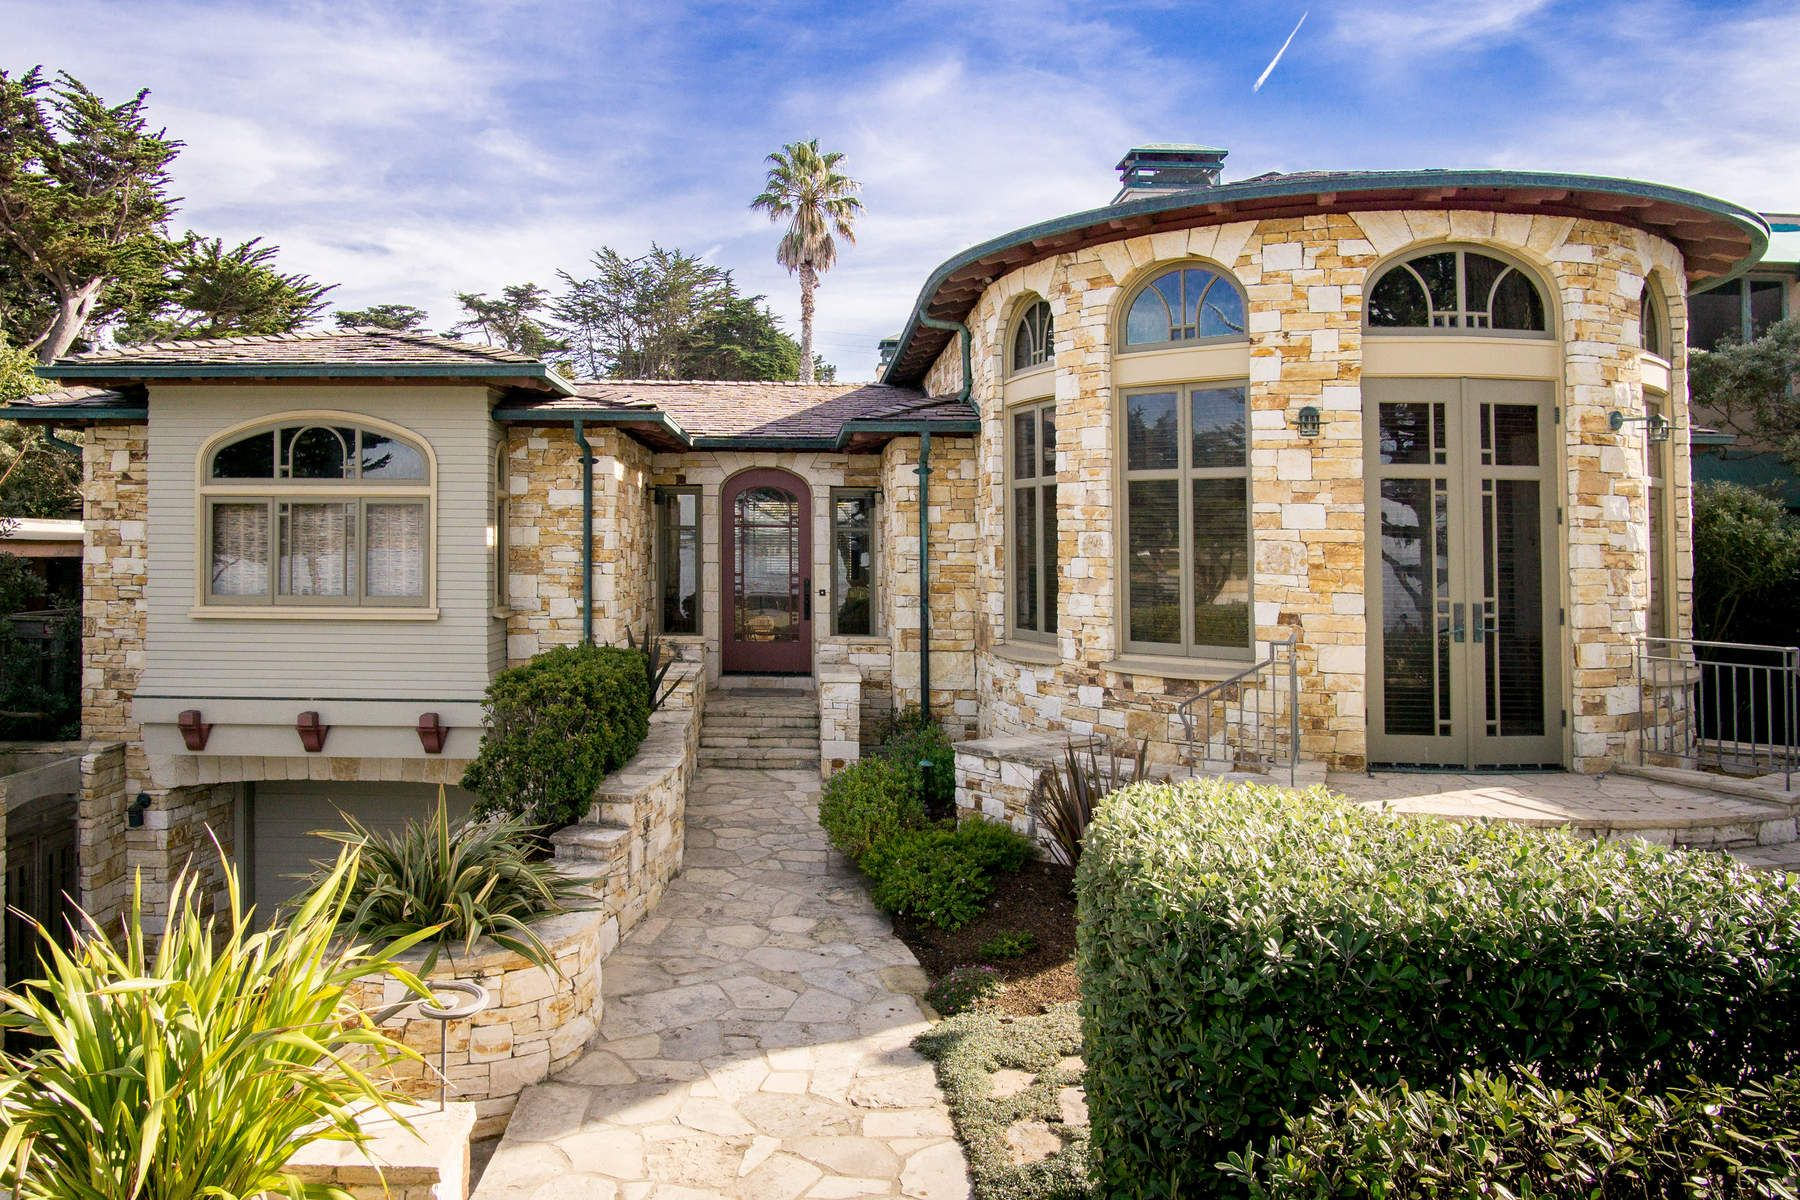 Single Family Home for Sale at Estate on Scenic Road 26077 Scenic Road Carmel, California 93923 United States